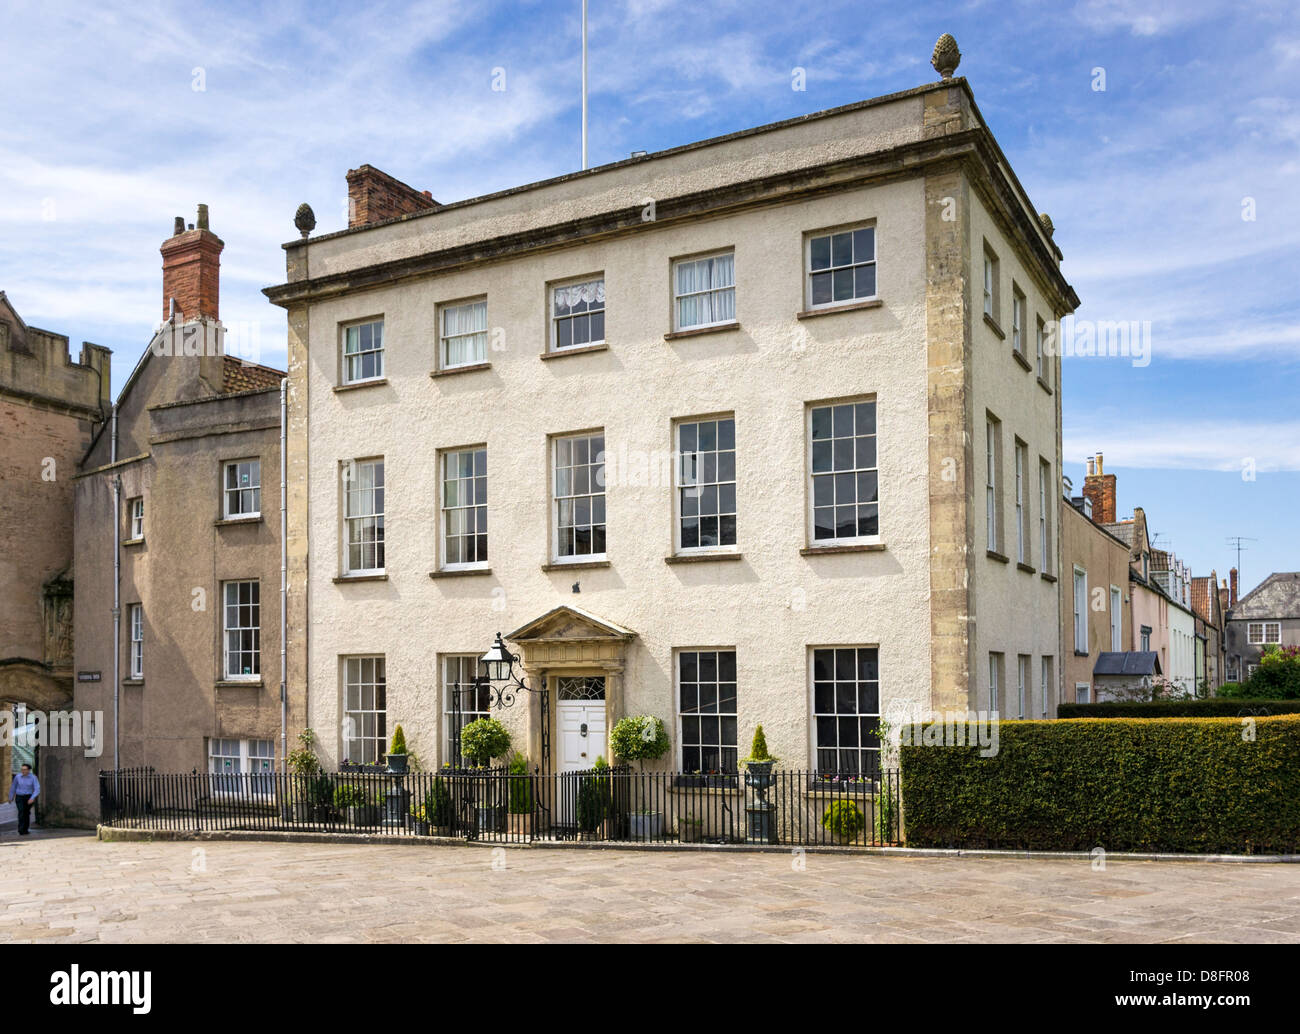 Georgian townhouse / house UK in Wells, Somerset, England - Stock Image